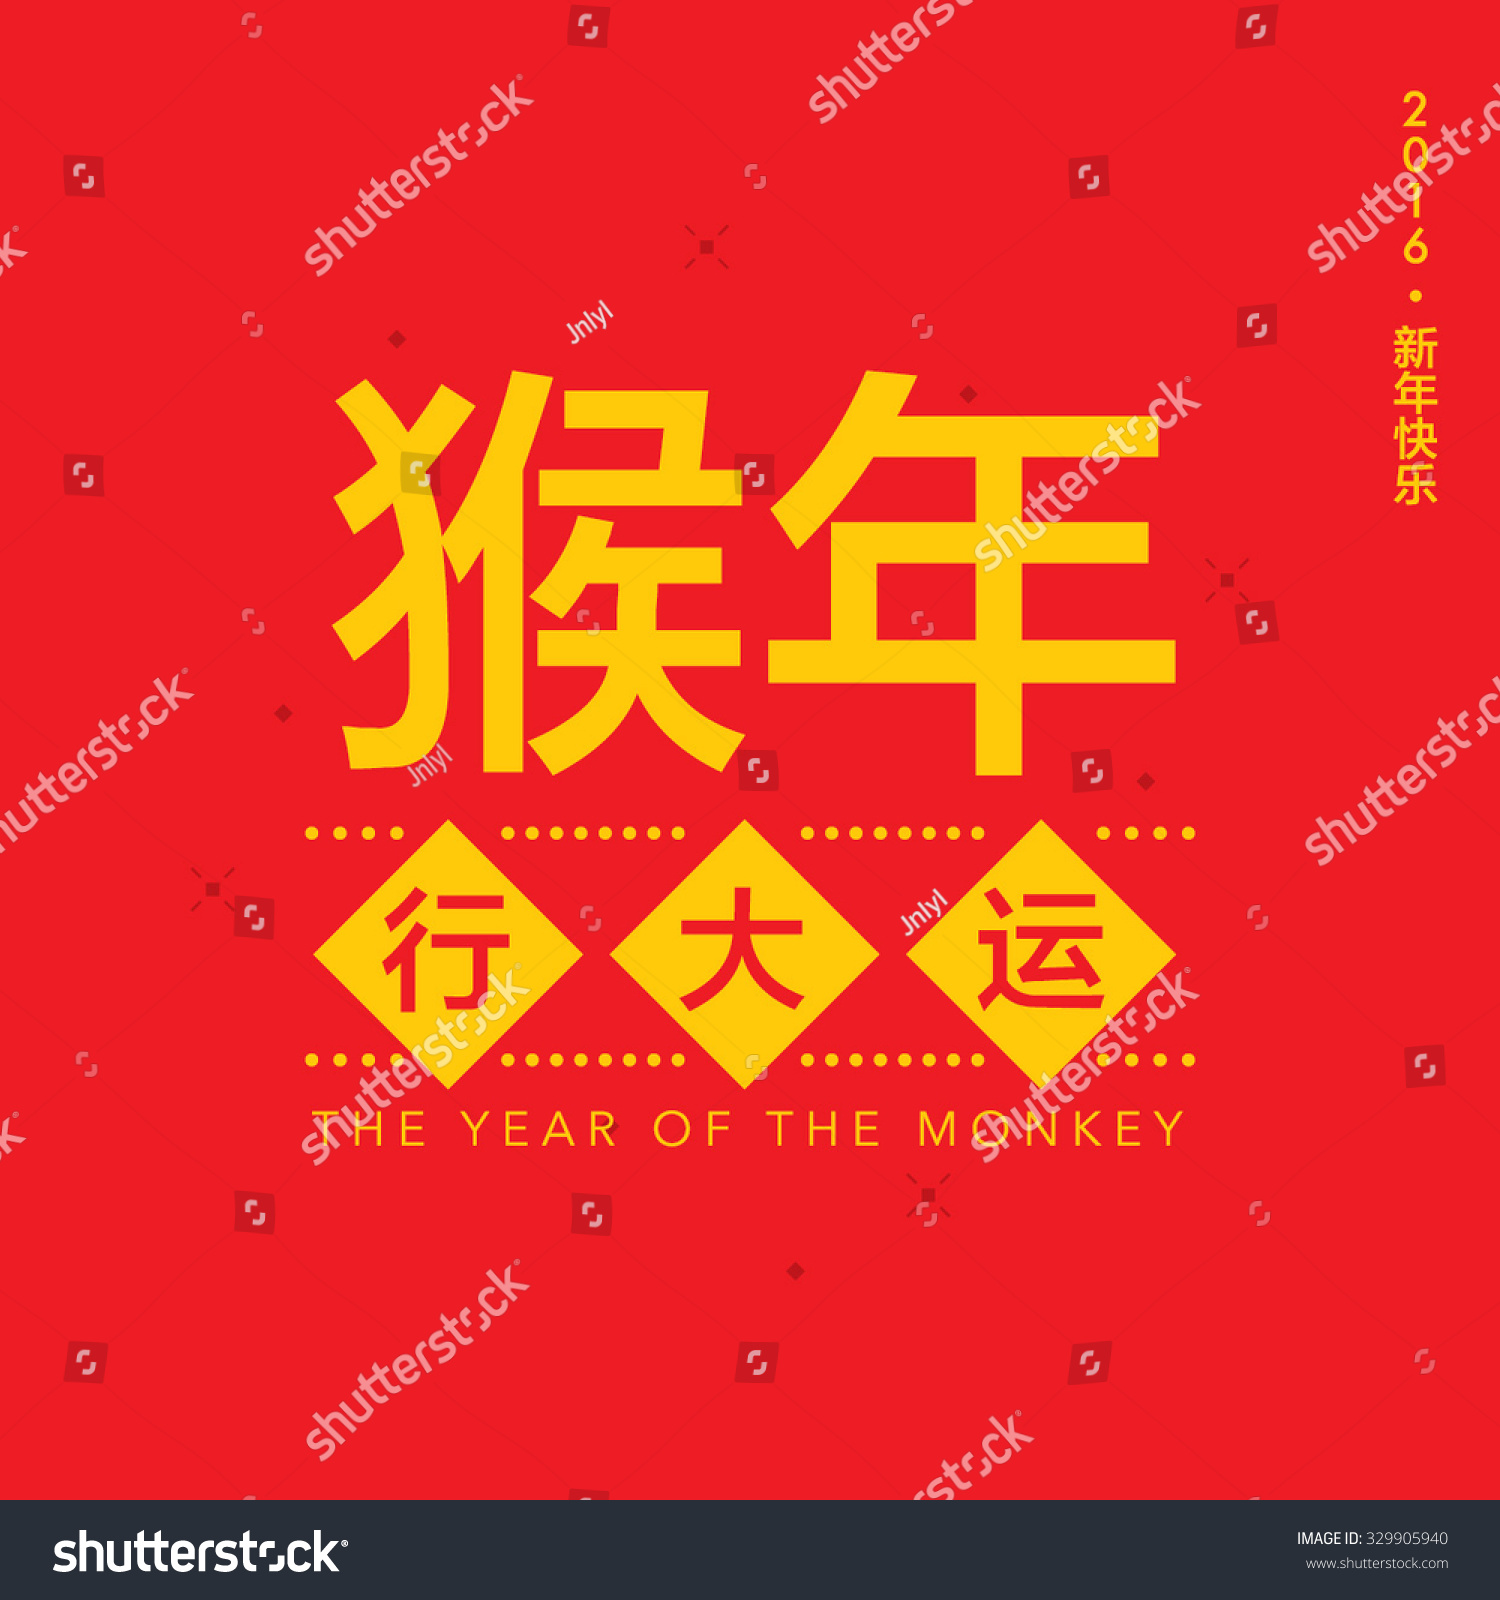 Chinese New Year Greetings Card Design The Year Of The Monkey